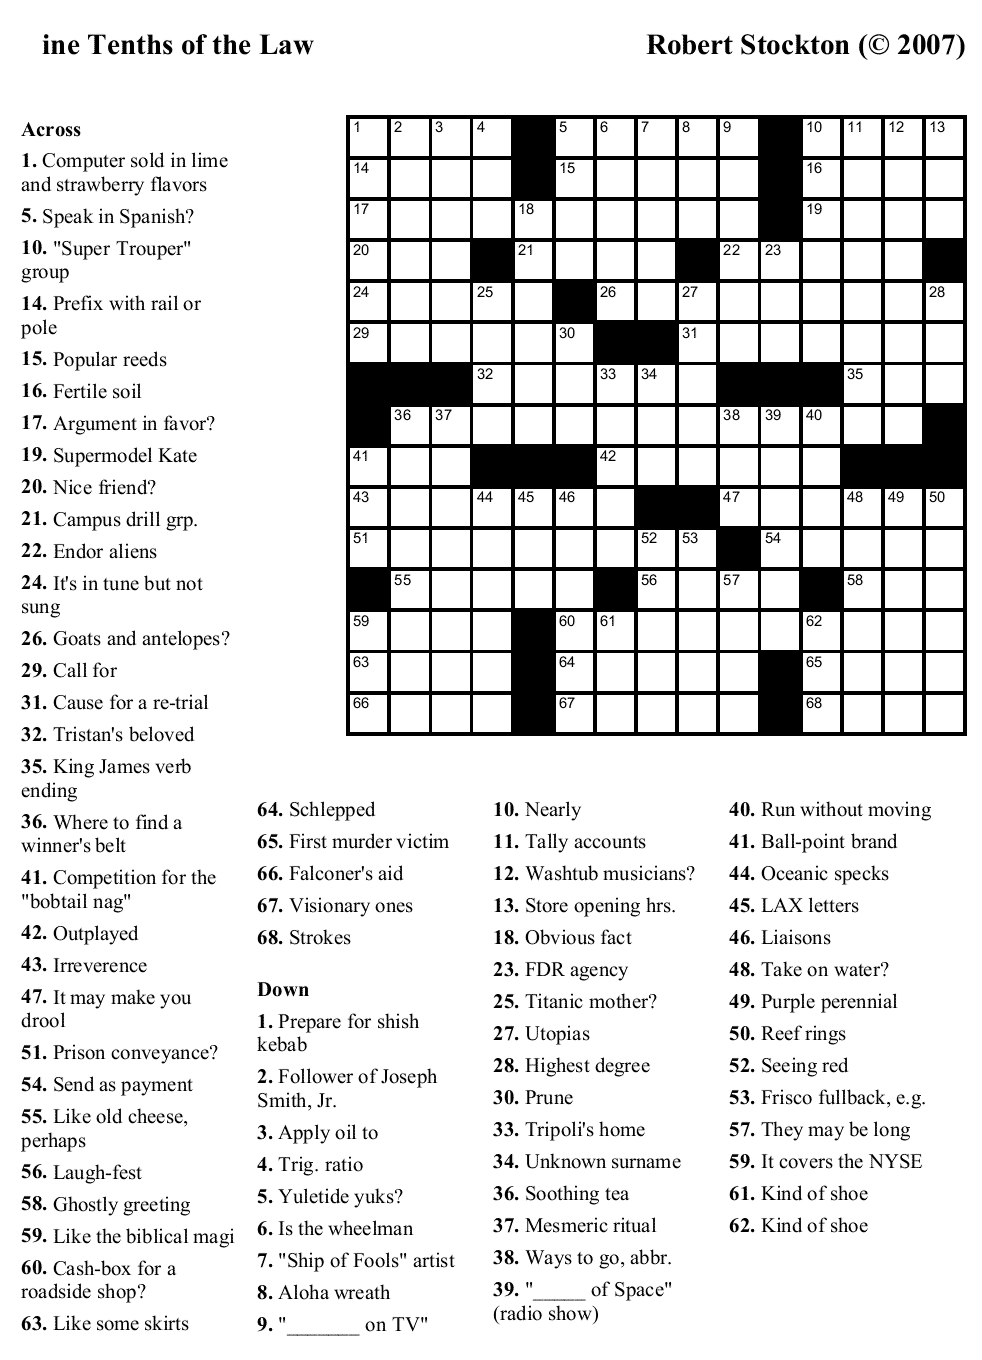 Crossword Puzzles Printable - Yahoo Image Search Results | Crossword - Printable Crossword Puzzles.net